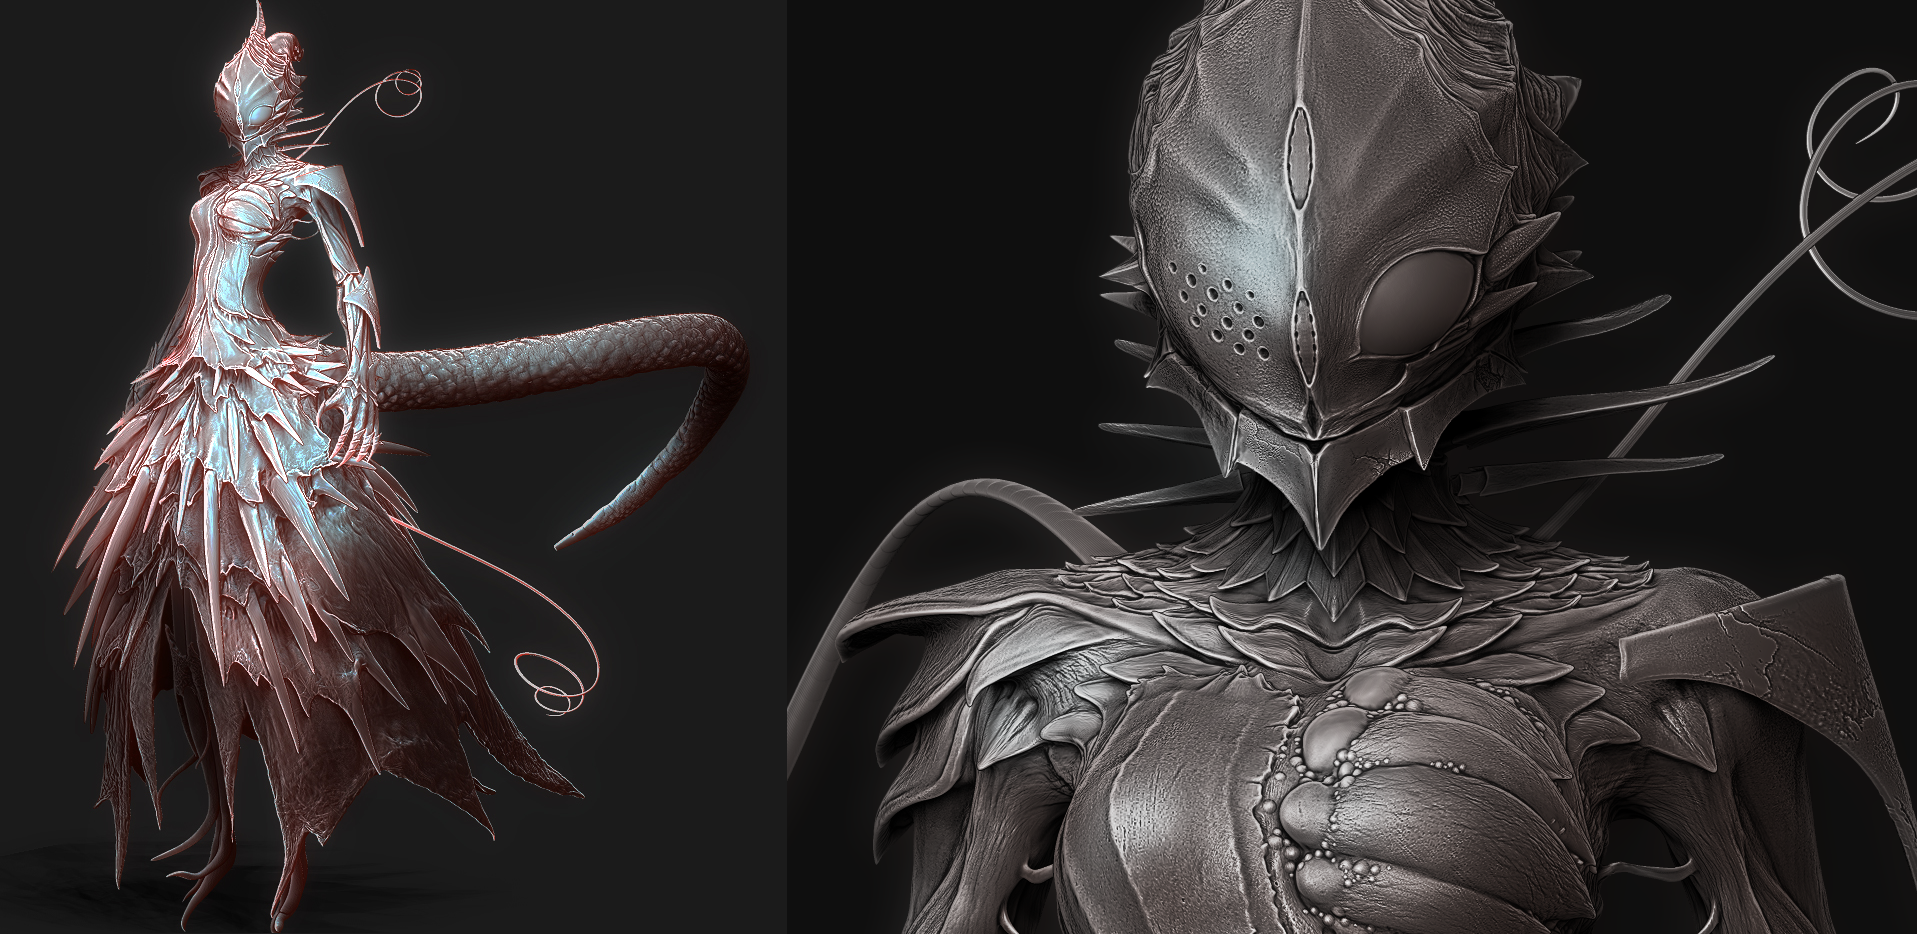 Knights of Sidonia - Tsumugi(wip3) by tetsuok9999